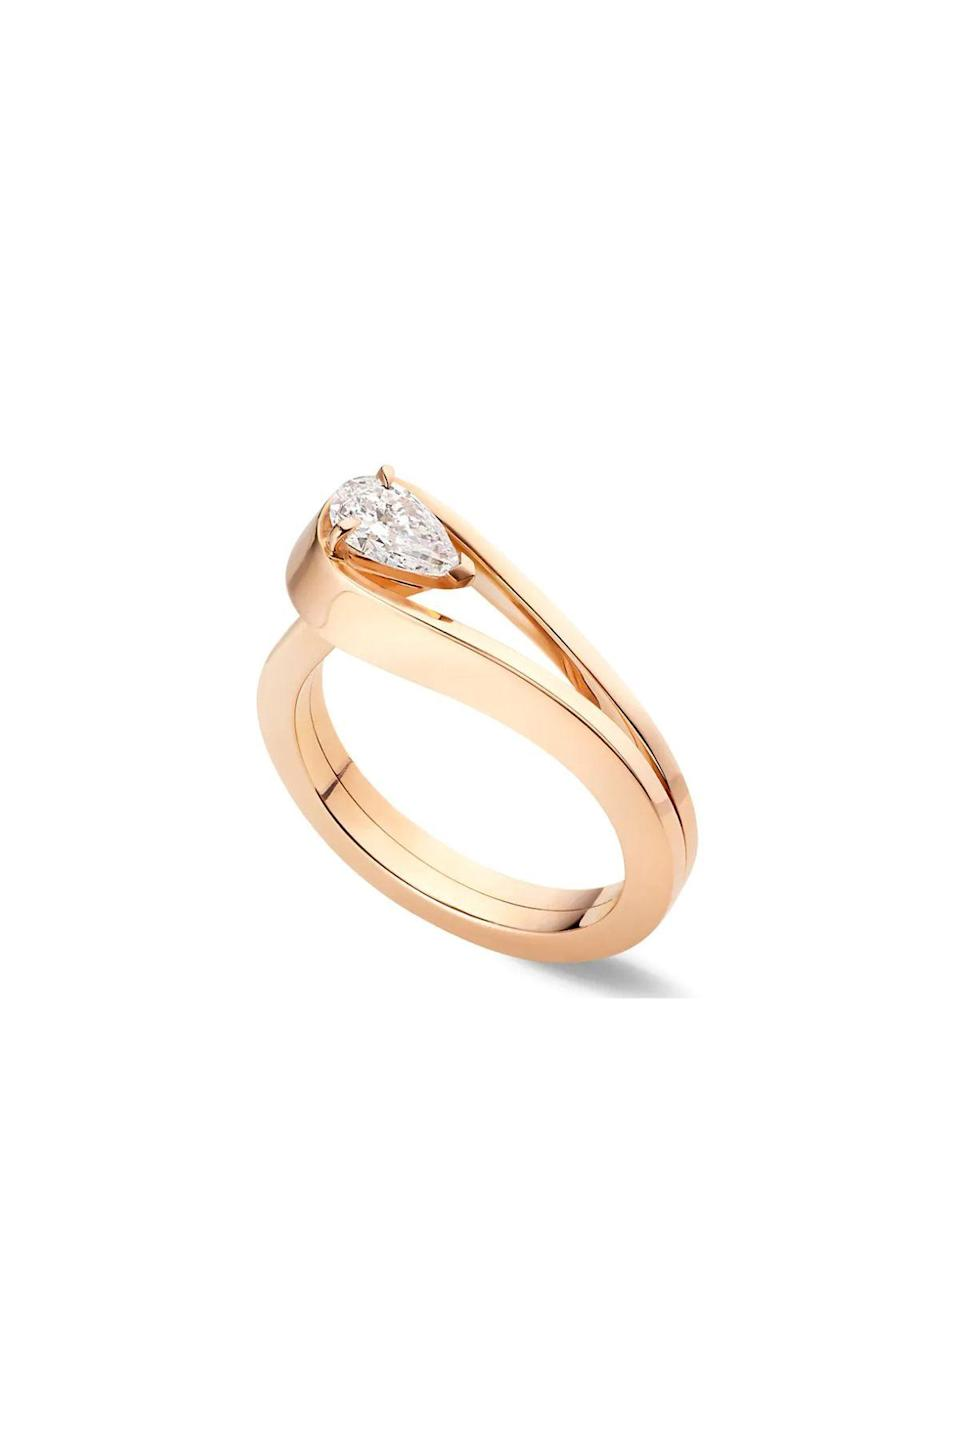 """<p><strong>Repossi</strong></p><p>saksfifthavenue.com</p><p><strong>$7150.00</strong></p><p><a href=""""https://go.redirectingat.com?id=74968X1596630&url=https%3A%2F%2Fwww.saksfifthavenue.com%2Fproduct%2Frepossi-serti-invers%25C3%25A9-18k-rose-gold--amp--diamond-ring-0400012990527.html%3Fsite_refer%3DCSE_GGLPLA%253AWomens_Jewelry%253ARepossi%26country%3DUS%26currency%3DUSD%26CSE_CID%3DG_Saks_PLA_US_Local_Accessories%253AAll%2BJewelry%2B%2526%2BAccessories%26gclid%3DCjwKCAjwhMmEBhBwEiwAXwFoEaR2znpSNbD3Sn5IWgavWDJhAvxt7EeJyK3eHGGAY_c0FqqZVV37ahoCnowQAvD_BwE%26gclsrc%3Daw.ds&sref=https%3A%2F%2Fwww.townandcountrymag.com%2Fstyle%2Fjewelry-and-watches%2Fg36344130%2Funique-engagement-rings-online%2F"""" rel=""""nofollow noopener"""" target=""""_blank"""" data-ylk=""""slk:Shop Now"""" class=""""link rapid-noclick-resp"""">Shop Now</a></p><p>The swooping setting of this rose gold diamond solitaire is a twist on the classic style and feels special without being a total show-off. </p>"""